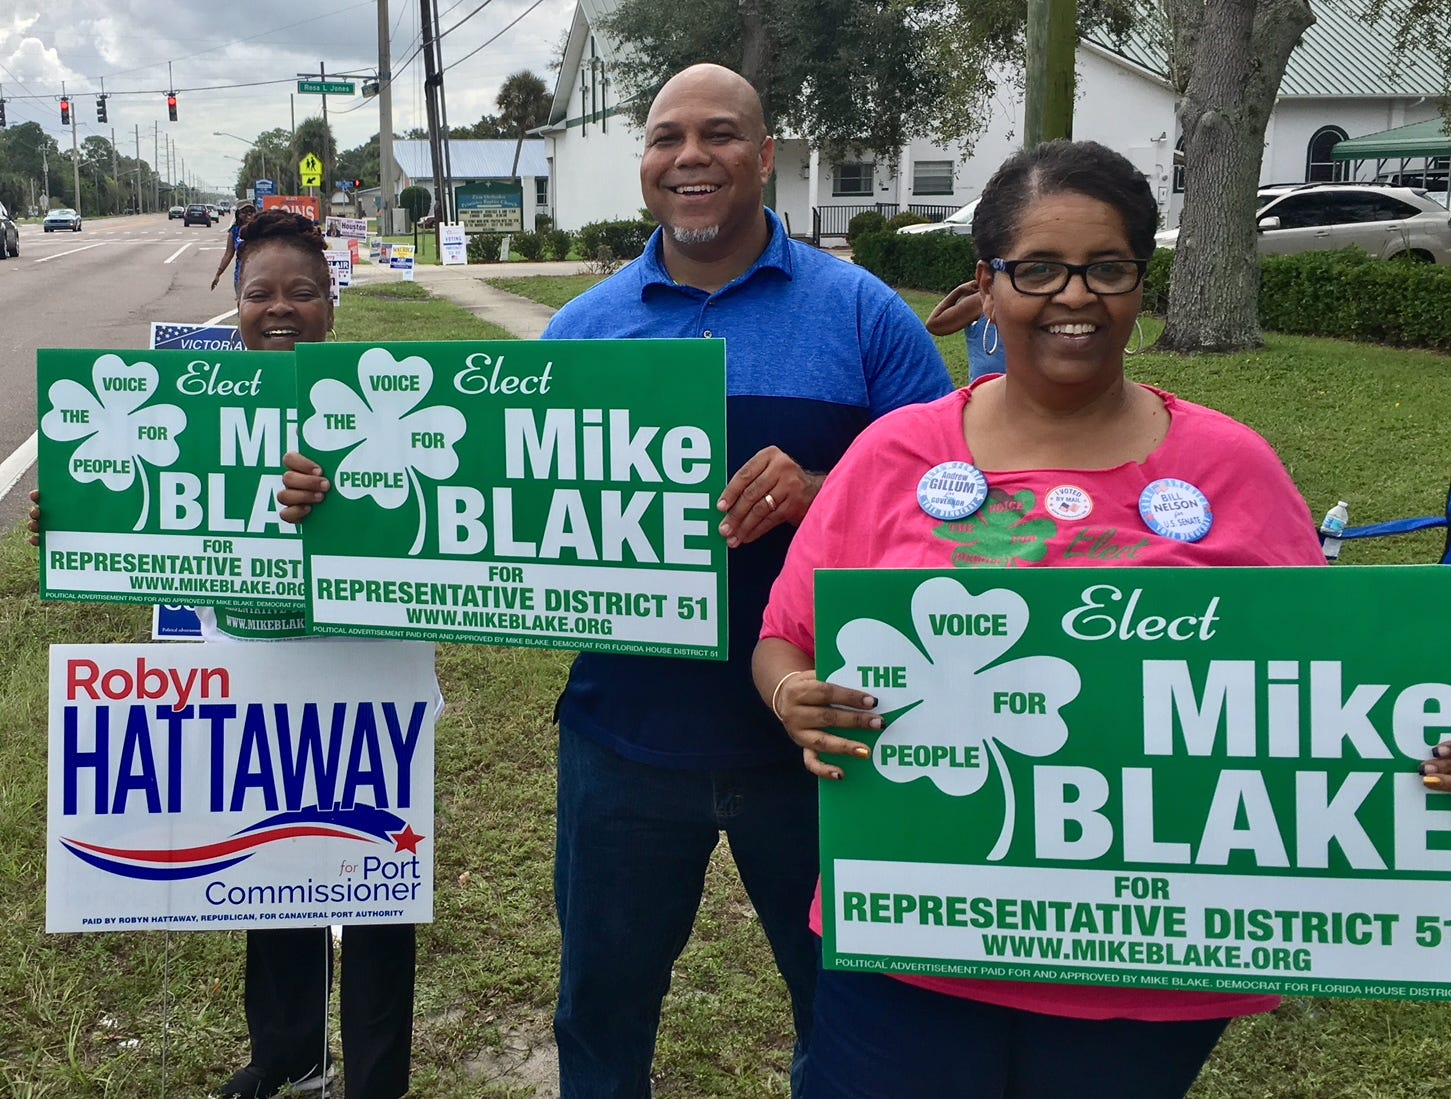 Donna Stokes, Mark Blake and Tammy Findlay-Bell campaigning for Mike Blake at Zion Orthodox Primitive Baptist Church in Cocoa.